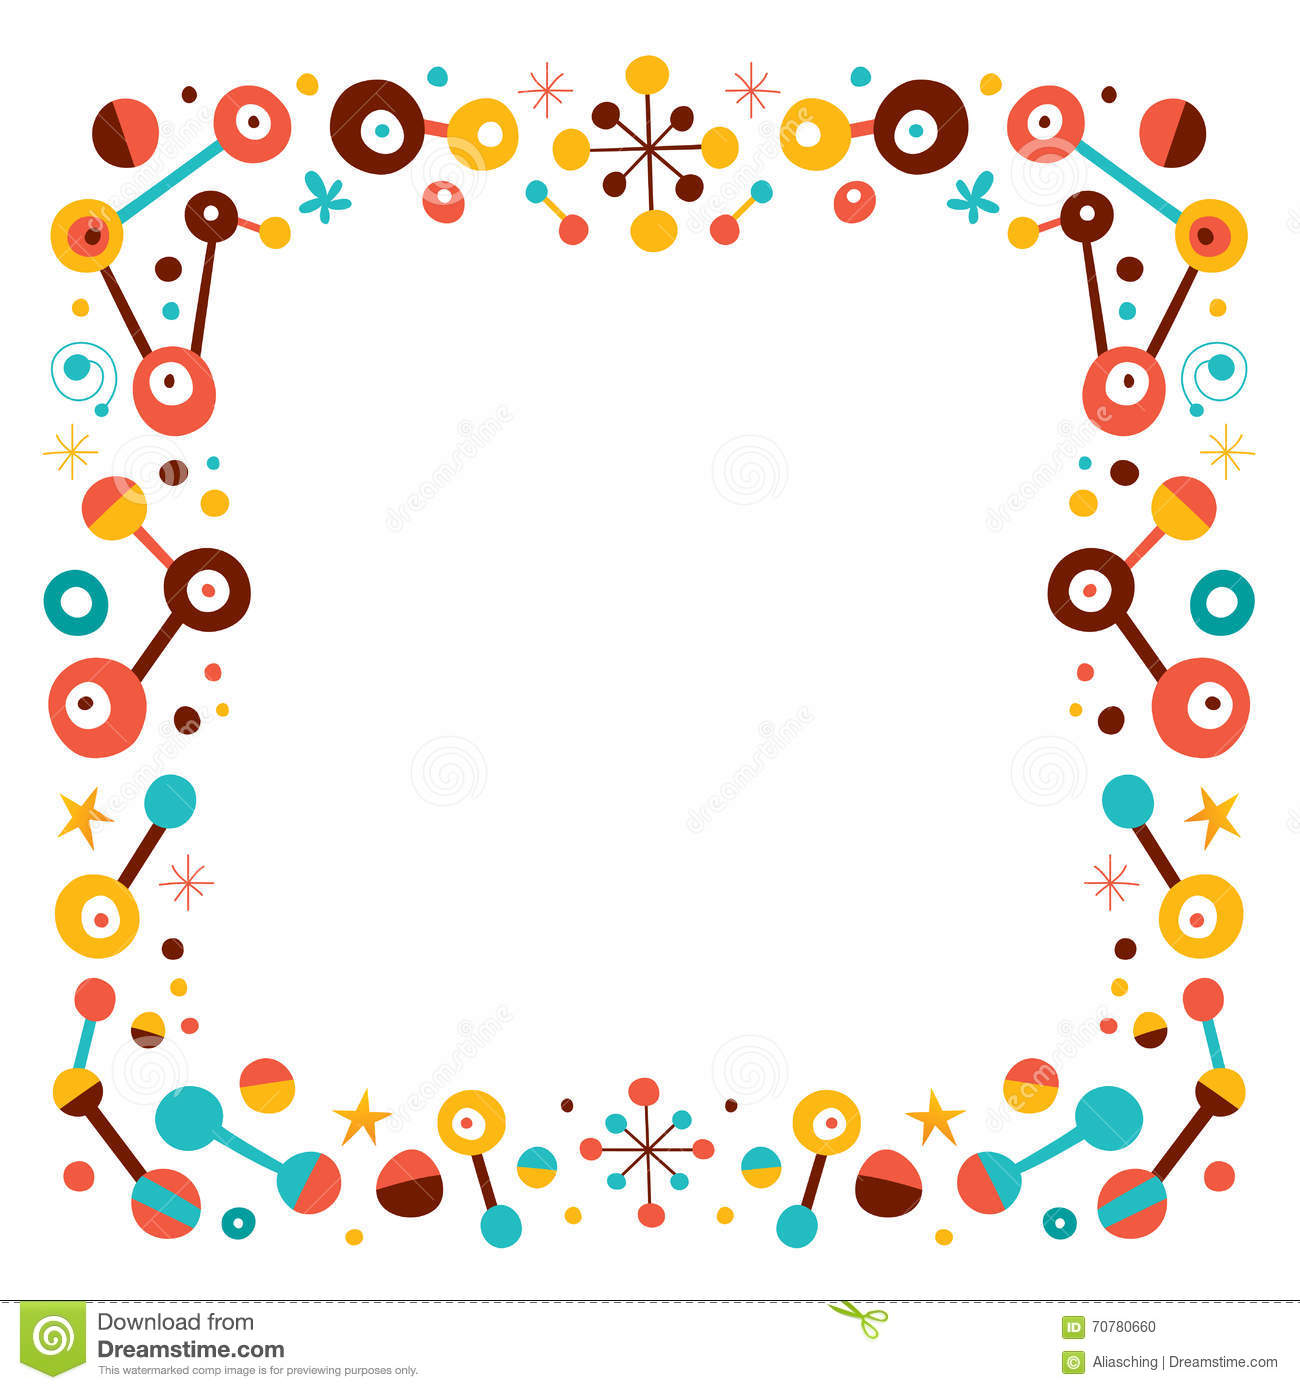 Abstract Art Retro Border Design Elements Stock Vector